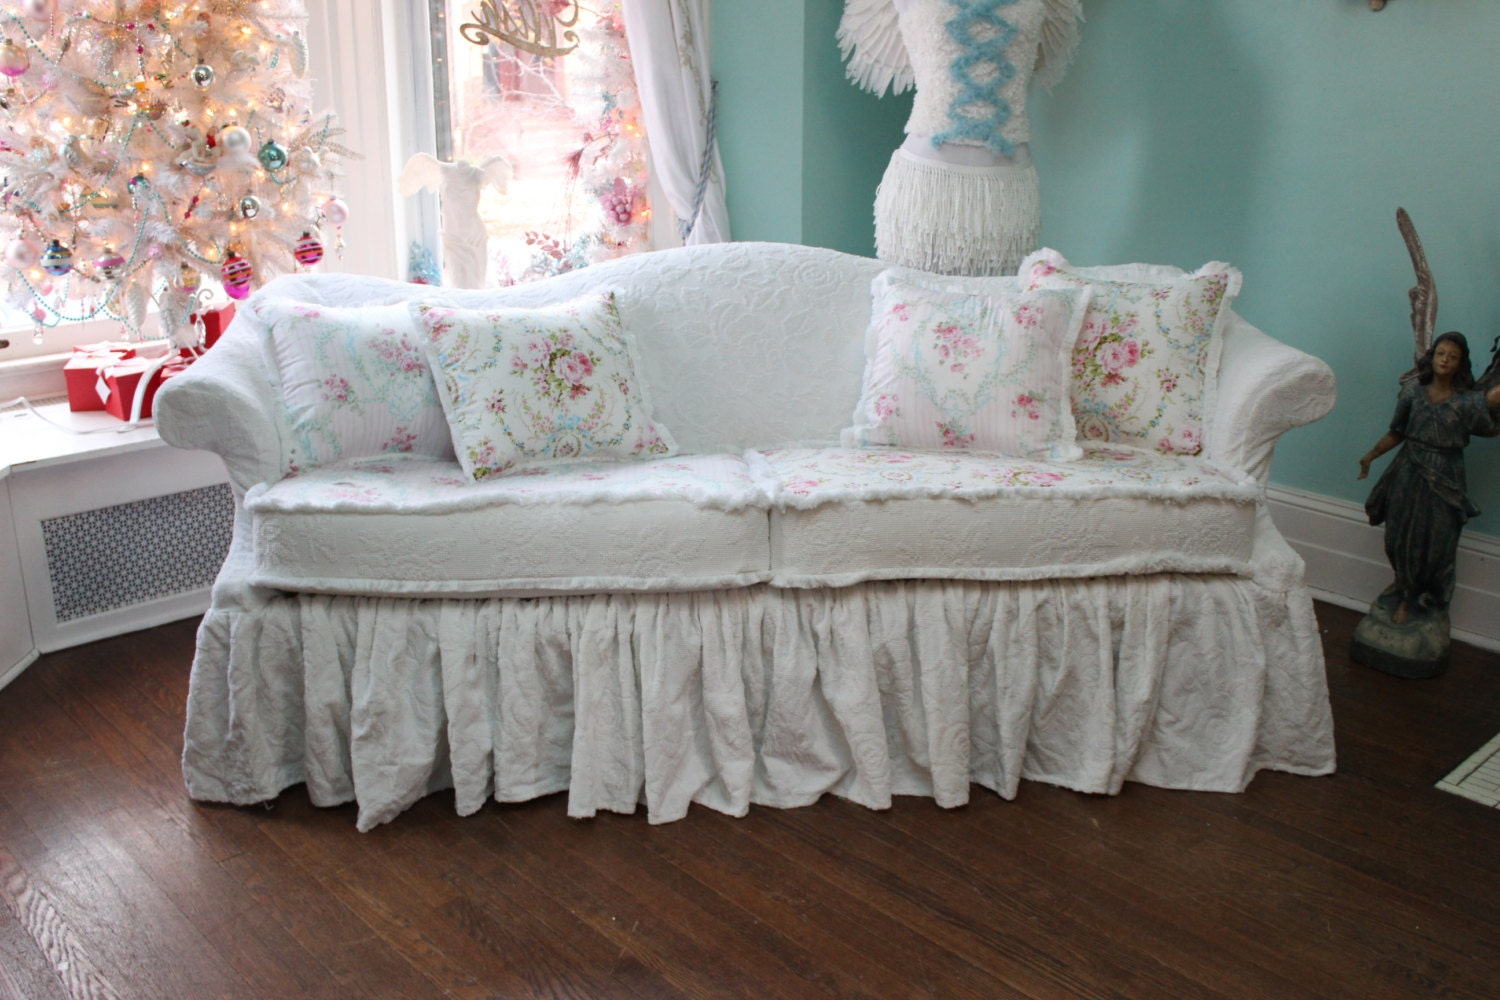 liaromg for libby 50 posit shabby chic by. Black Bedroom Furniture Sets. Home Design Ideas